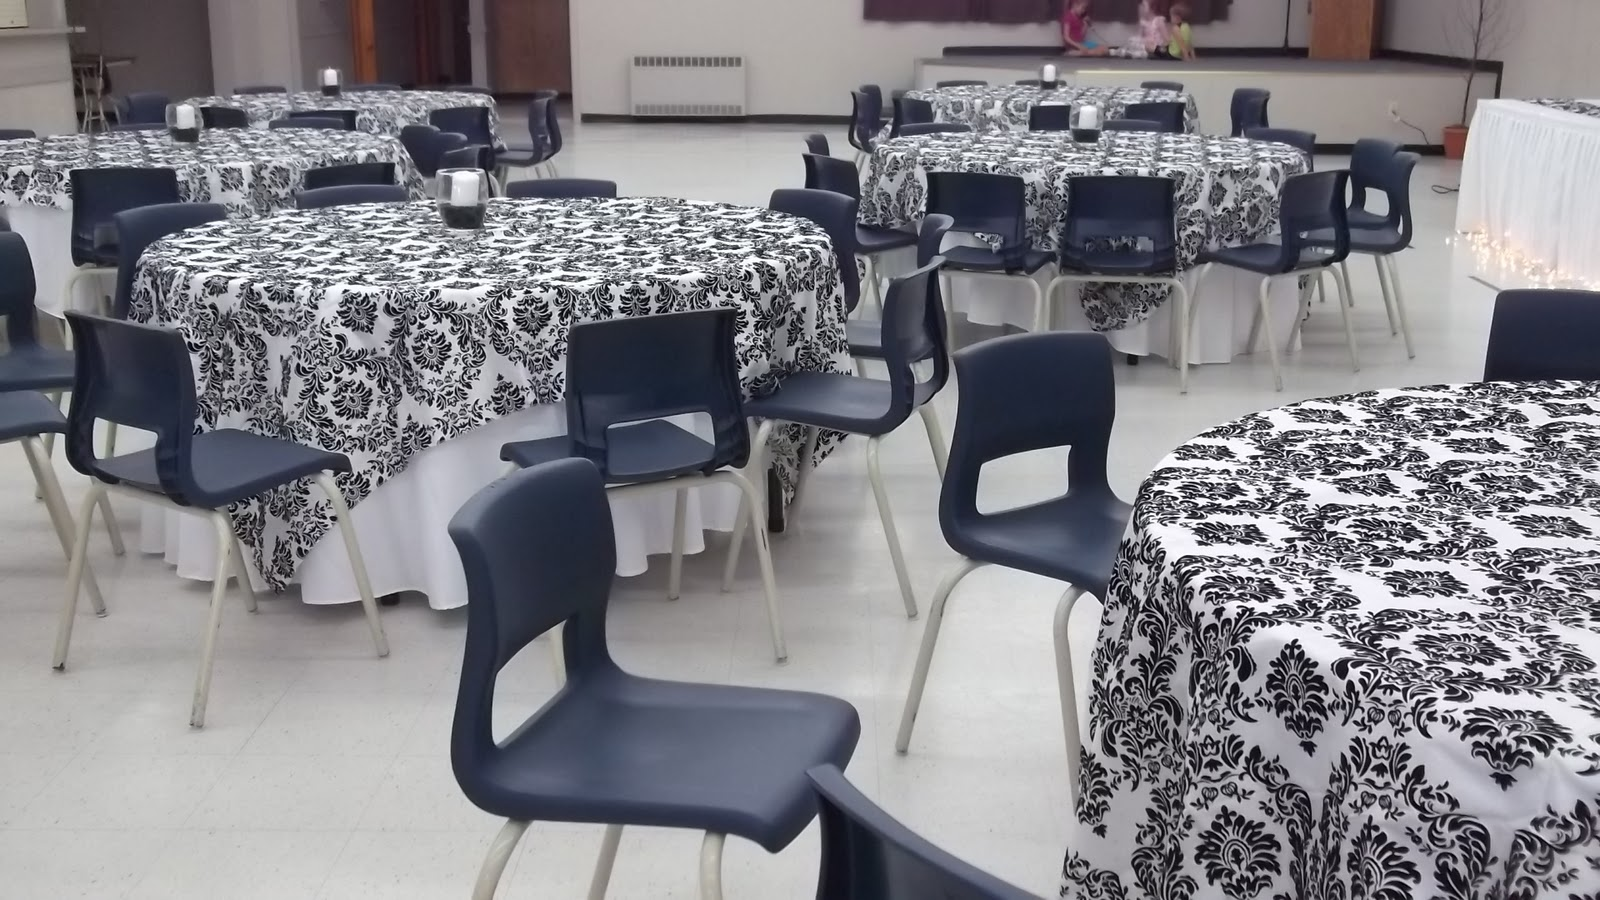 simply elegant chair covers and linens foldable wooden chairs india diy wedding decor